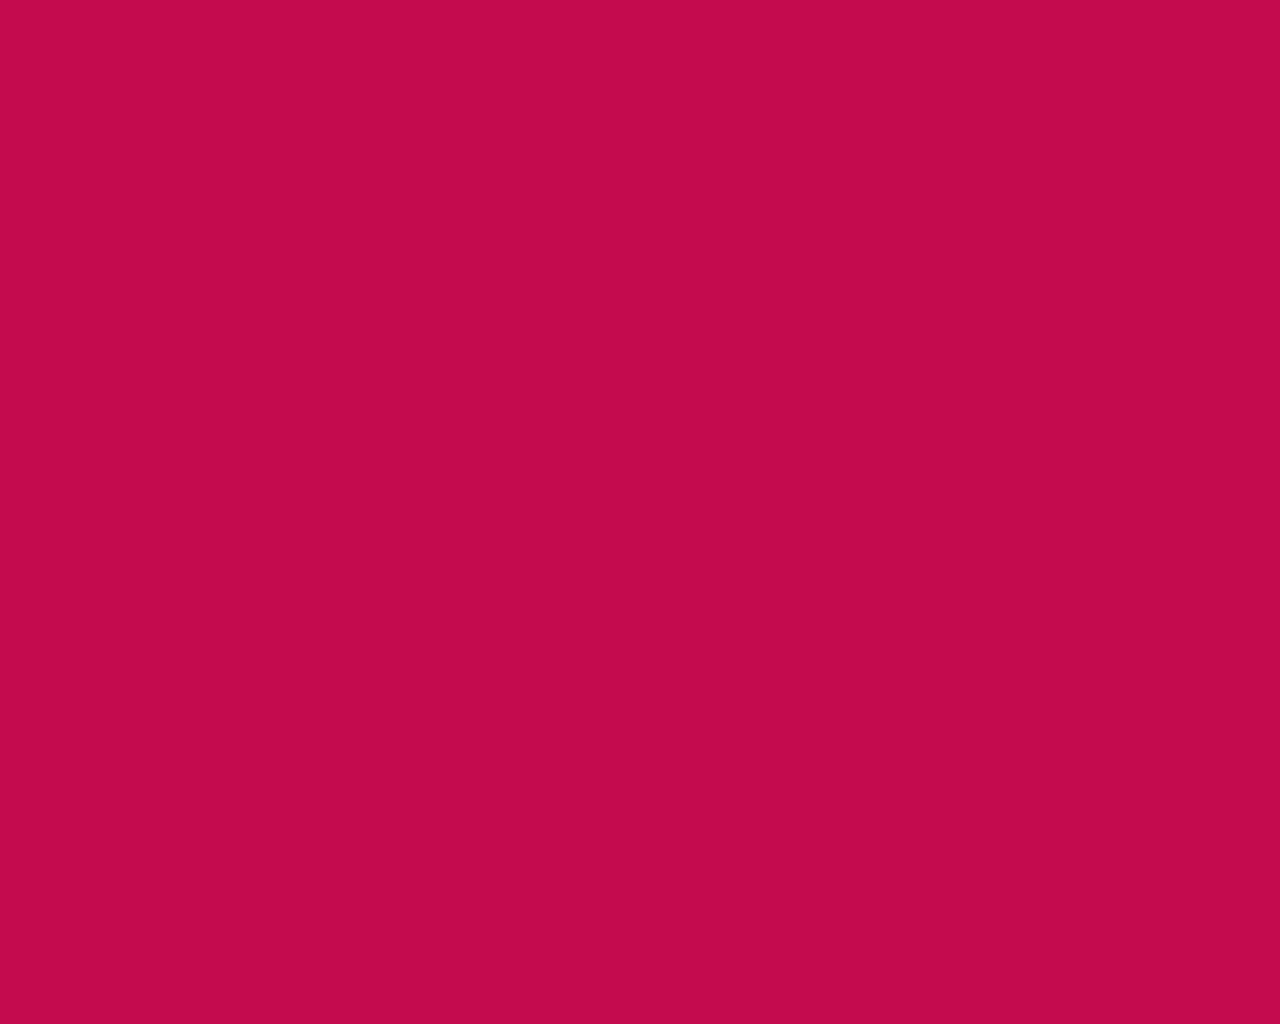 1280x1024 Pictorial Carmine Solid Color Background